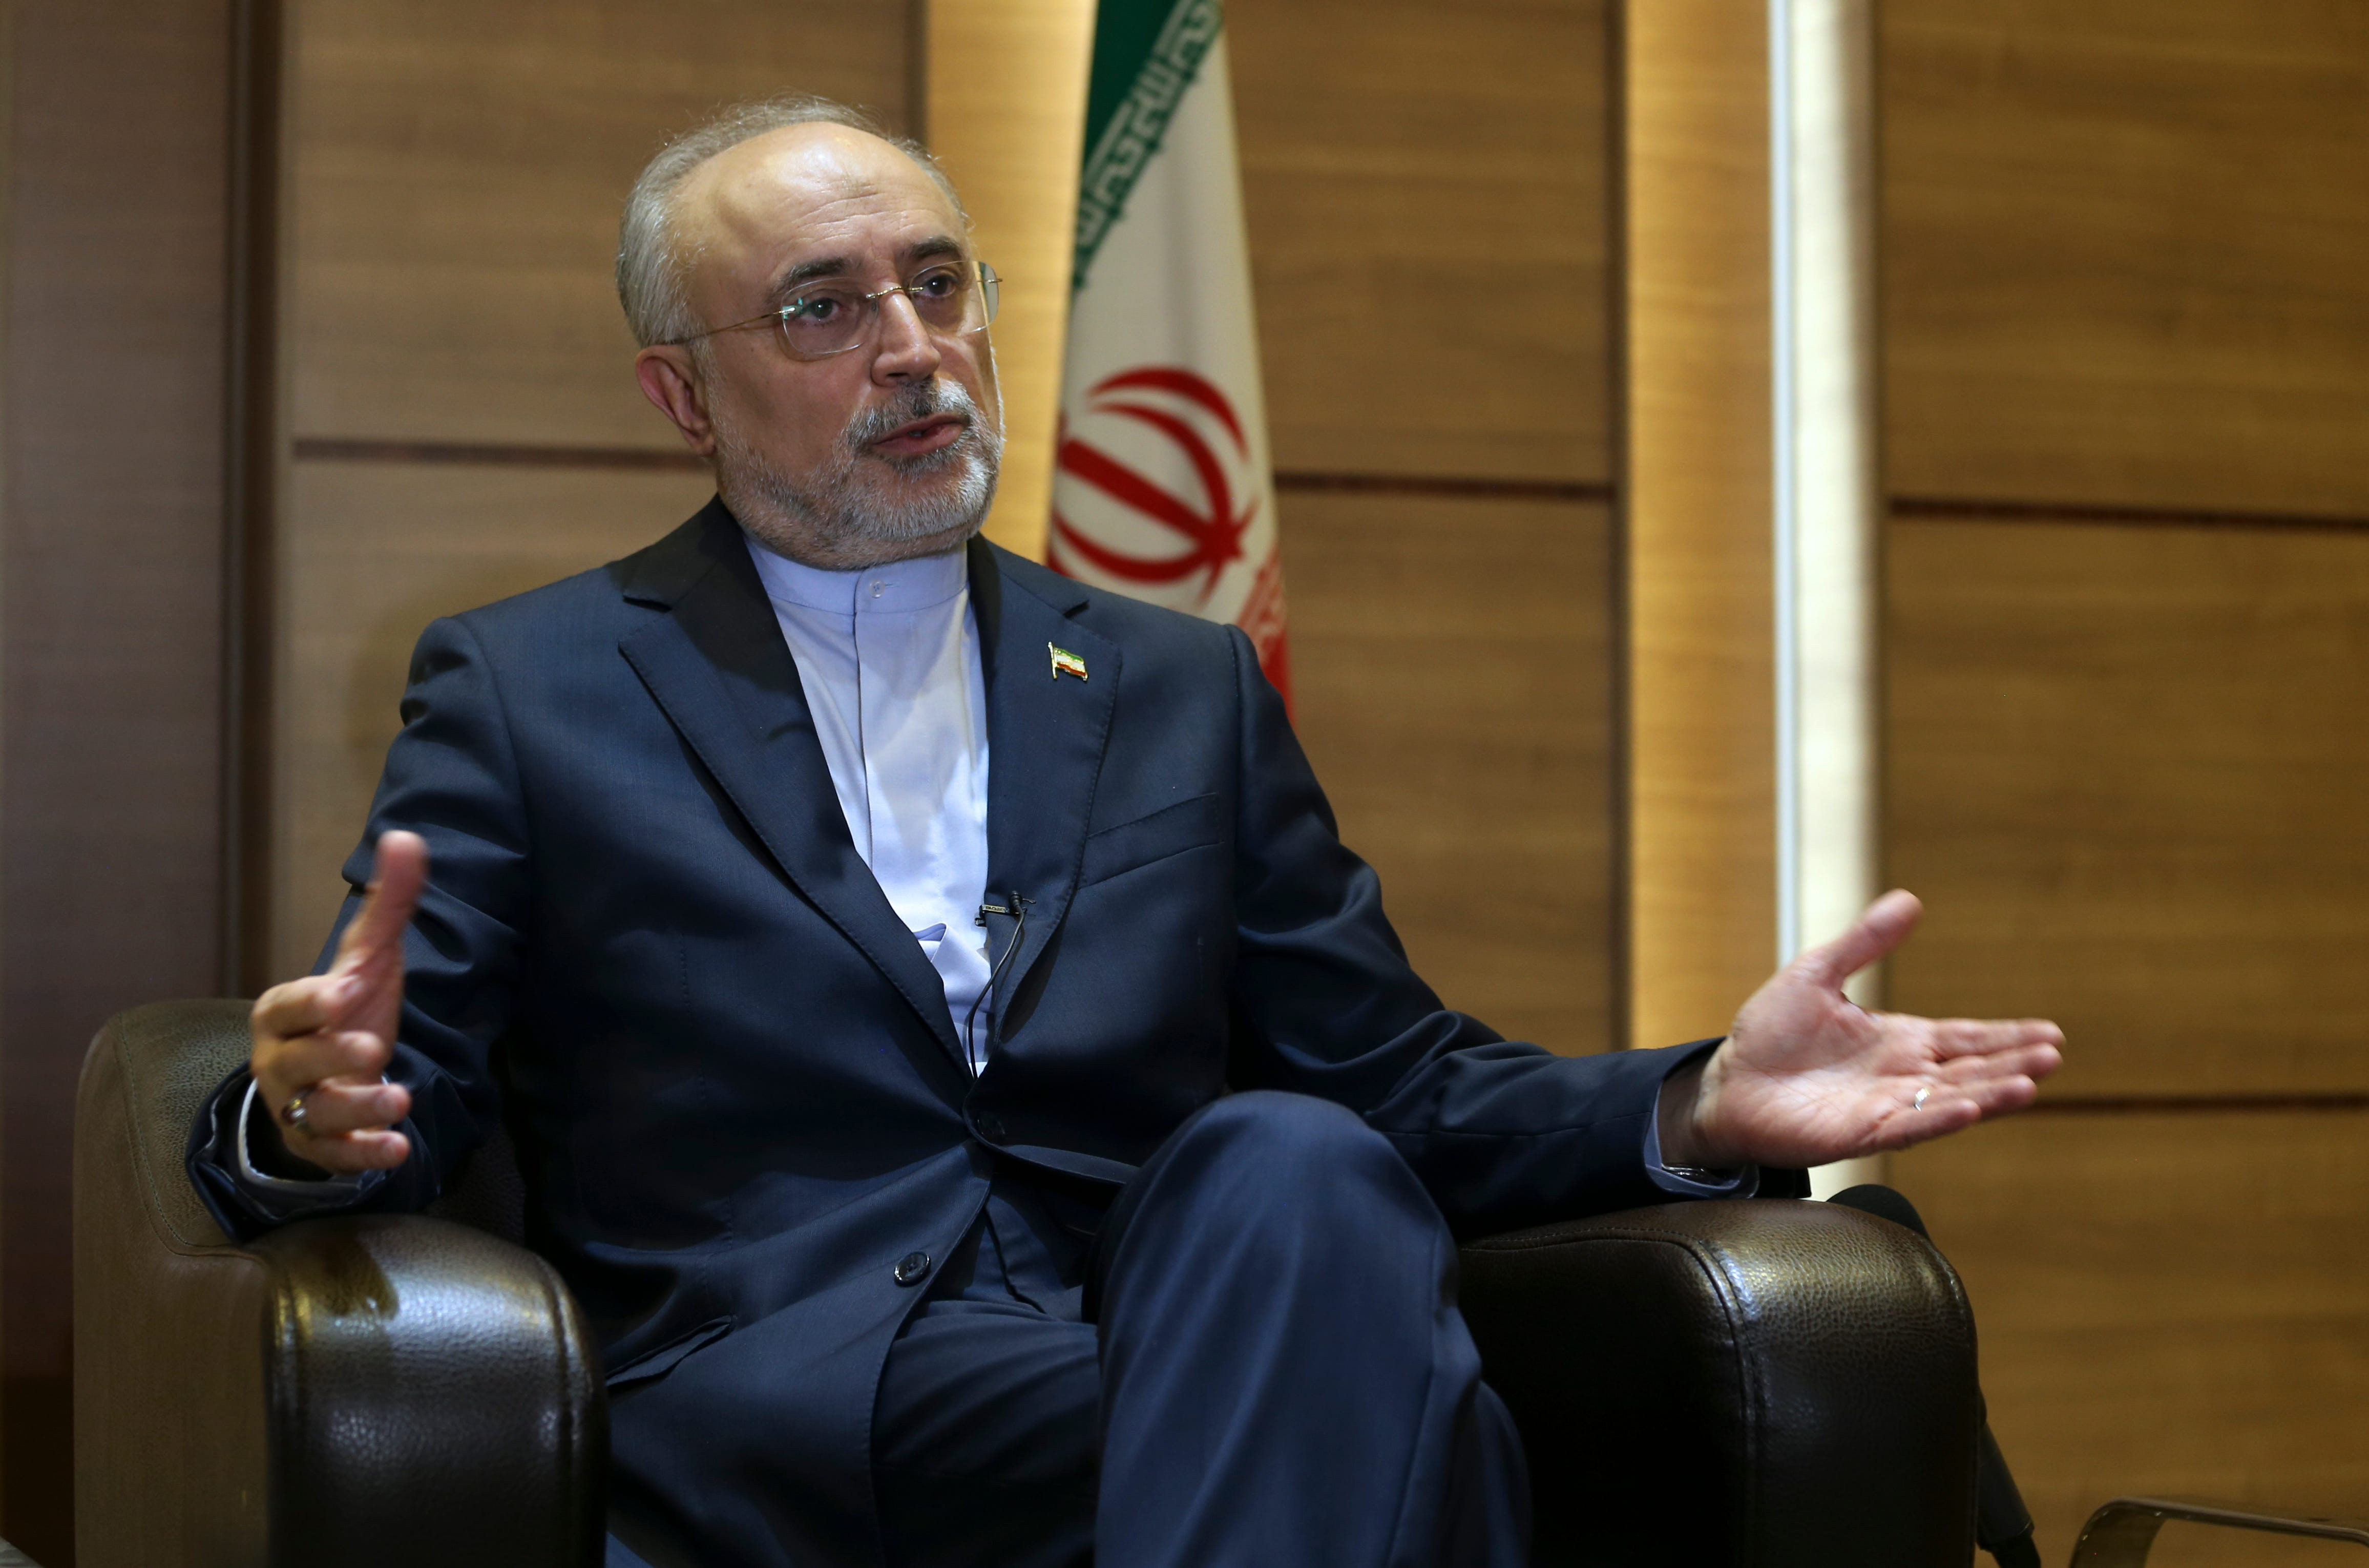 Iran's nuclear chief Ali Akbar Salehi speaks in an interview with The Associated Press at the headquarters of Iran's atomic energy agency, in Tehran, Iran, Tuesday, Sept. 11, 2018. Salehi told The Associated Press that he hopes the atomic deal between Tehran and world powers survives, but warns the program will be in a stronger position than ever if not. (AP Photo/Vahid Salemi) ORG XMIT: VAH103